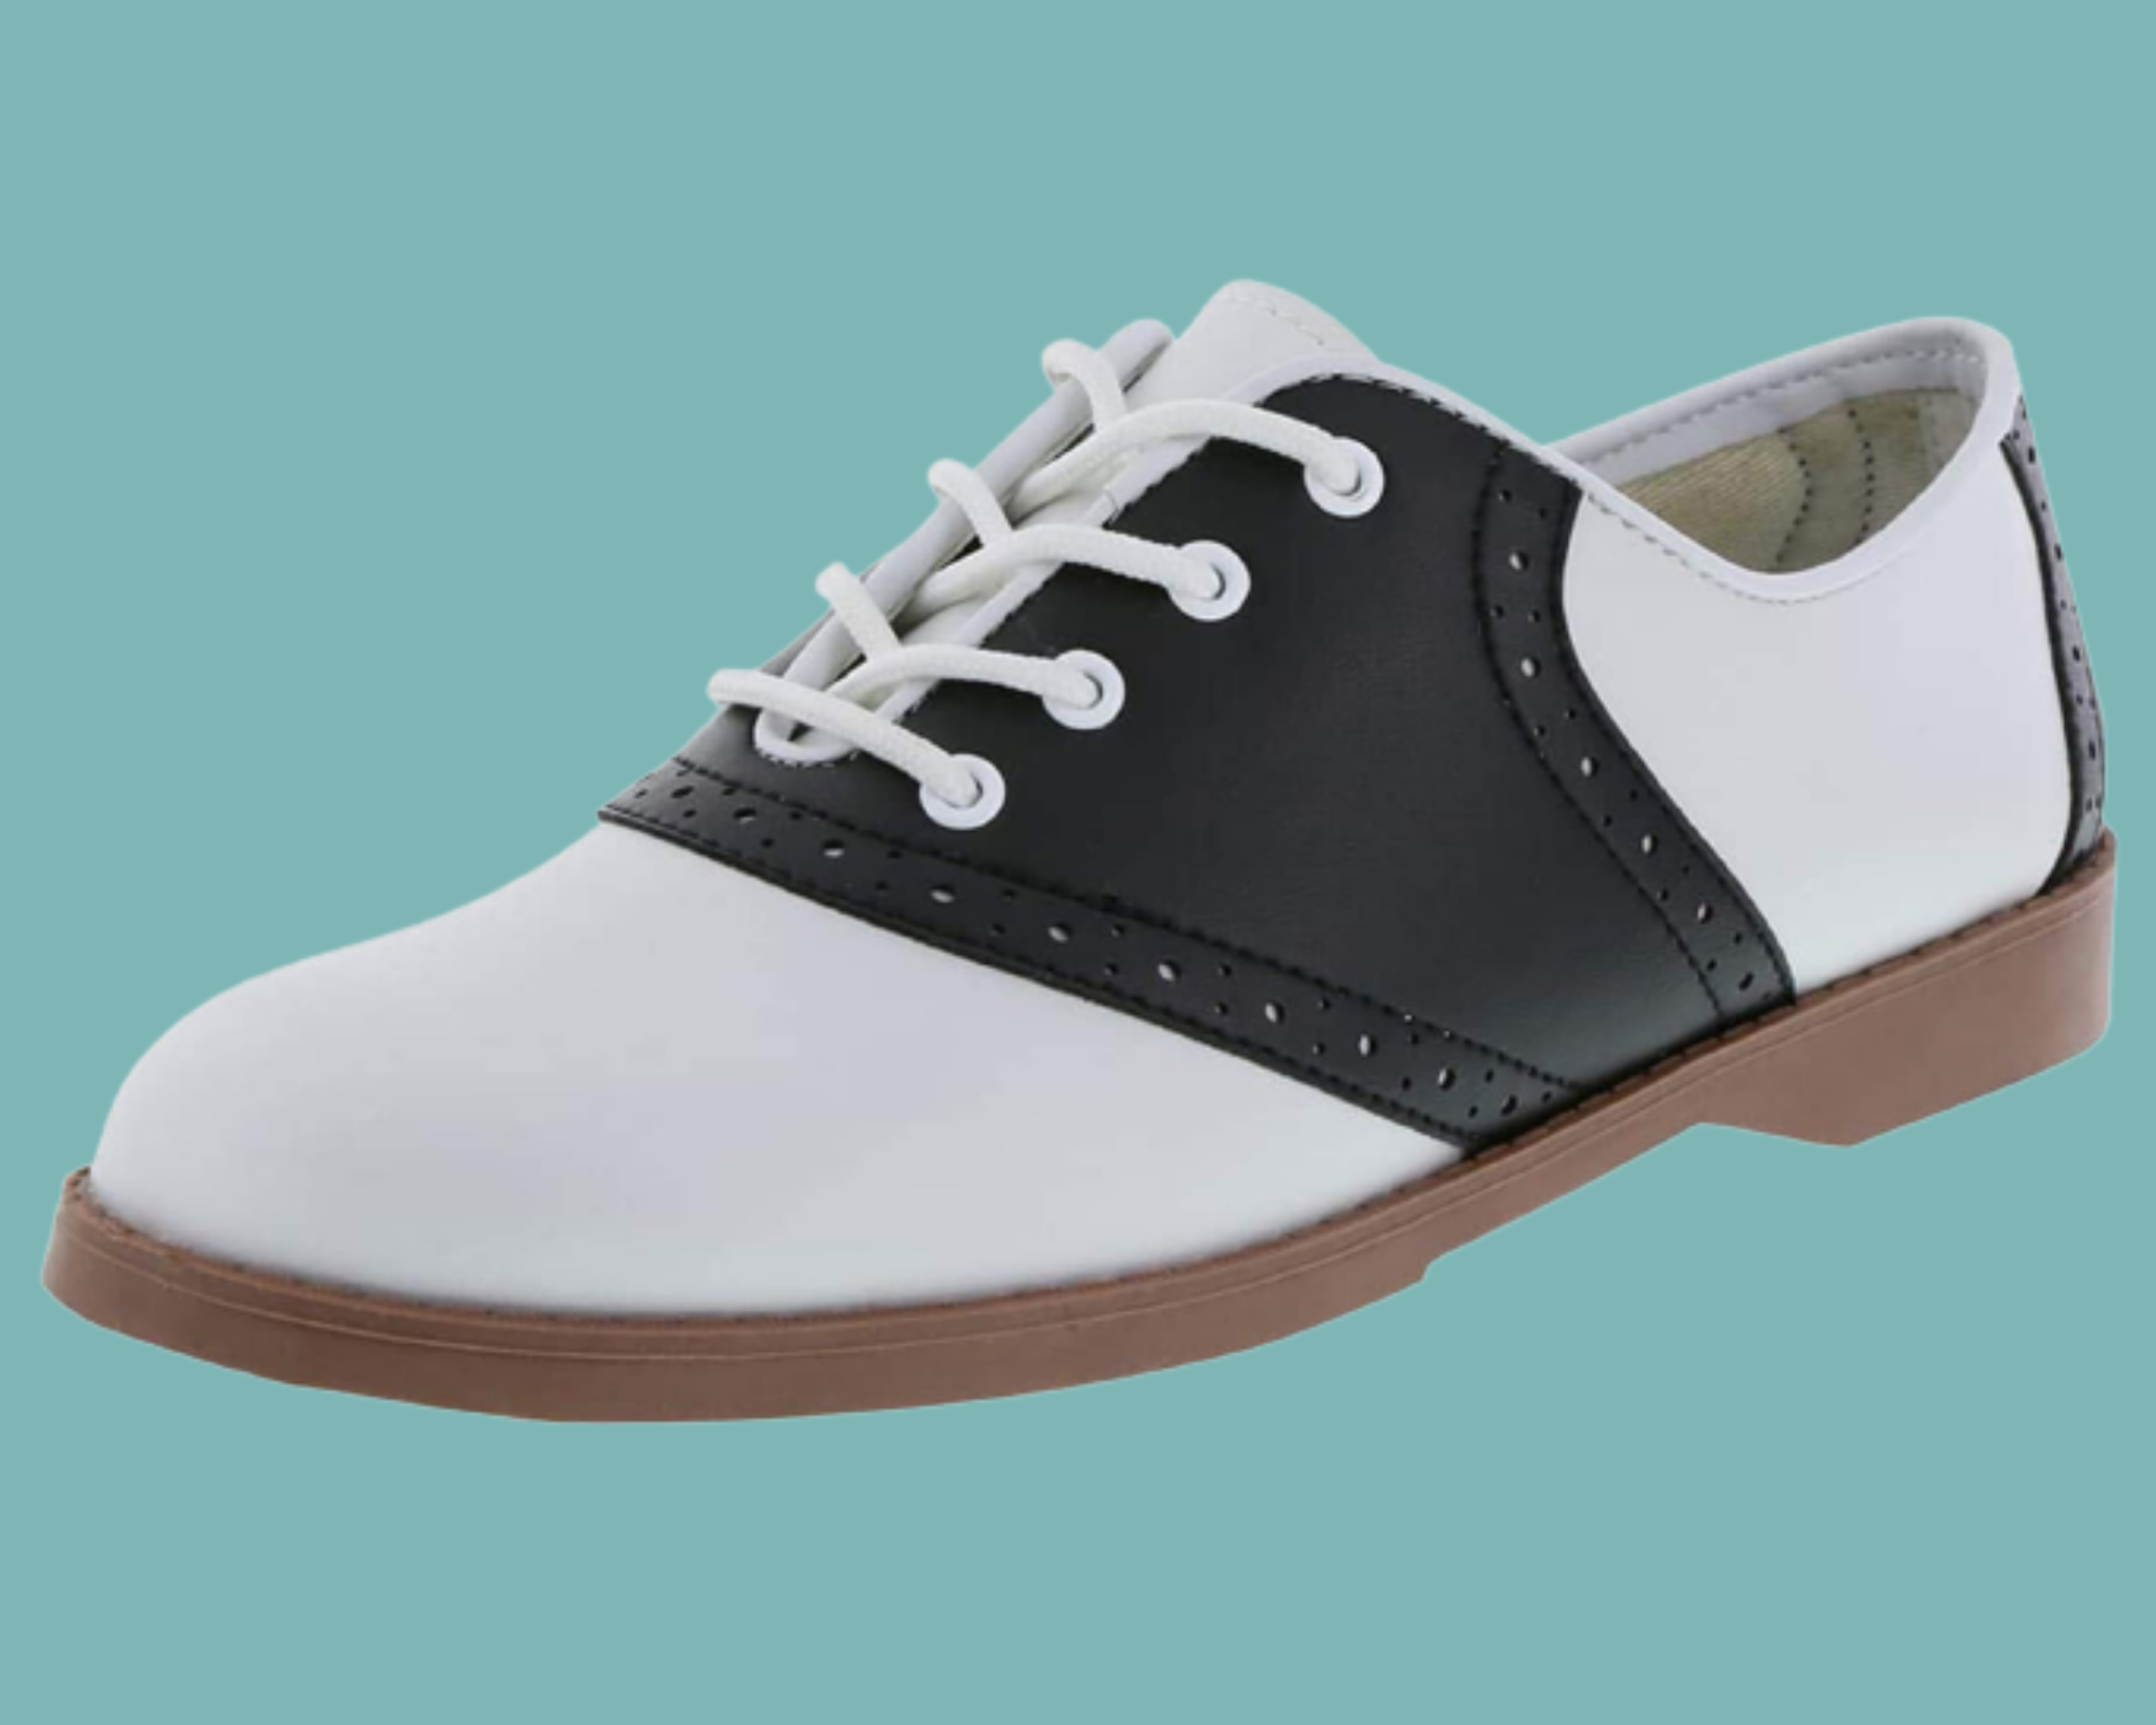 Best saddle shoe for women